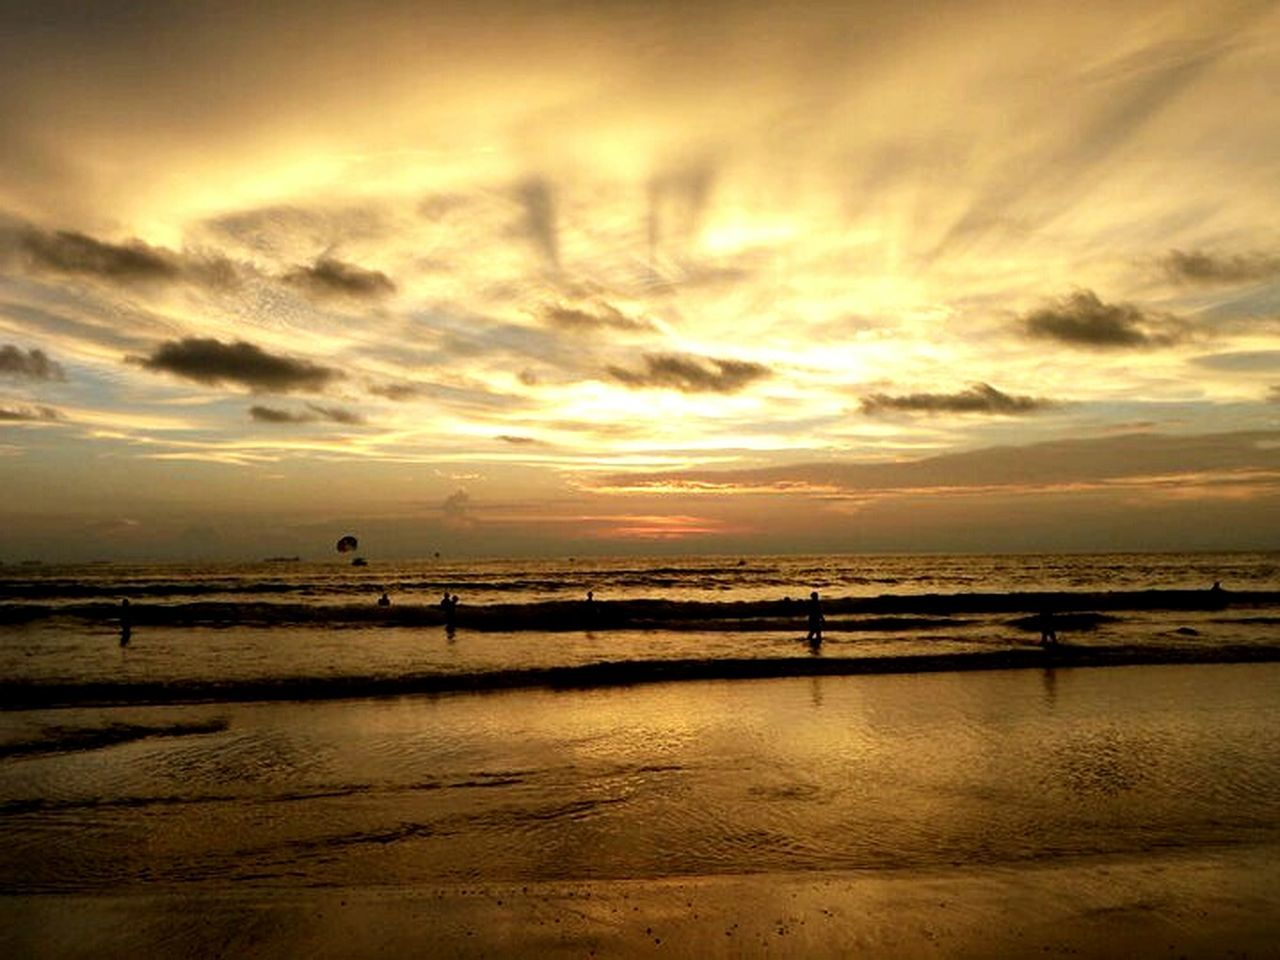 sunset, water, beauty in nature, nature, scenics, tranquility, reflection, tranquil scene, sea, cloud - sky, sky, beach, no people, horizon over water, outdoors, day